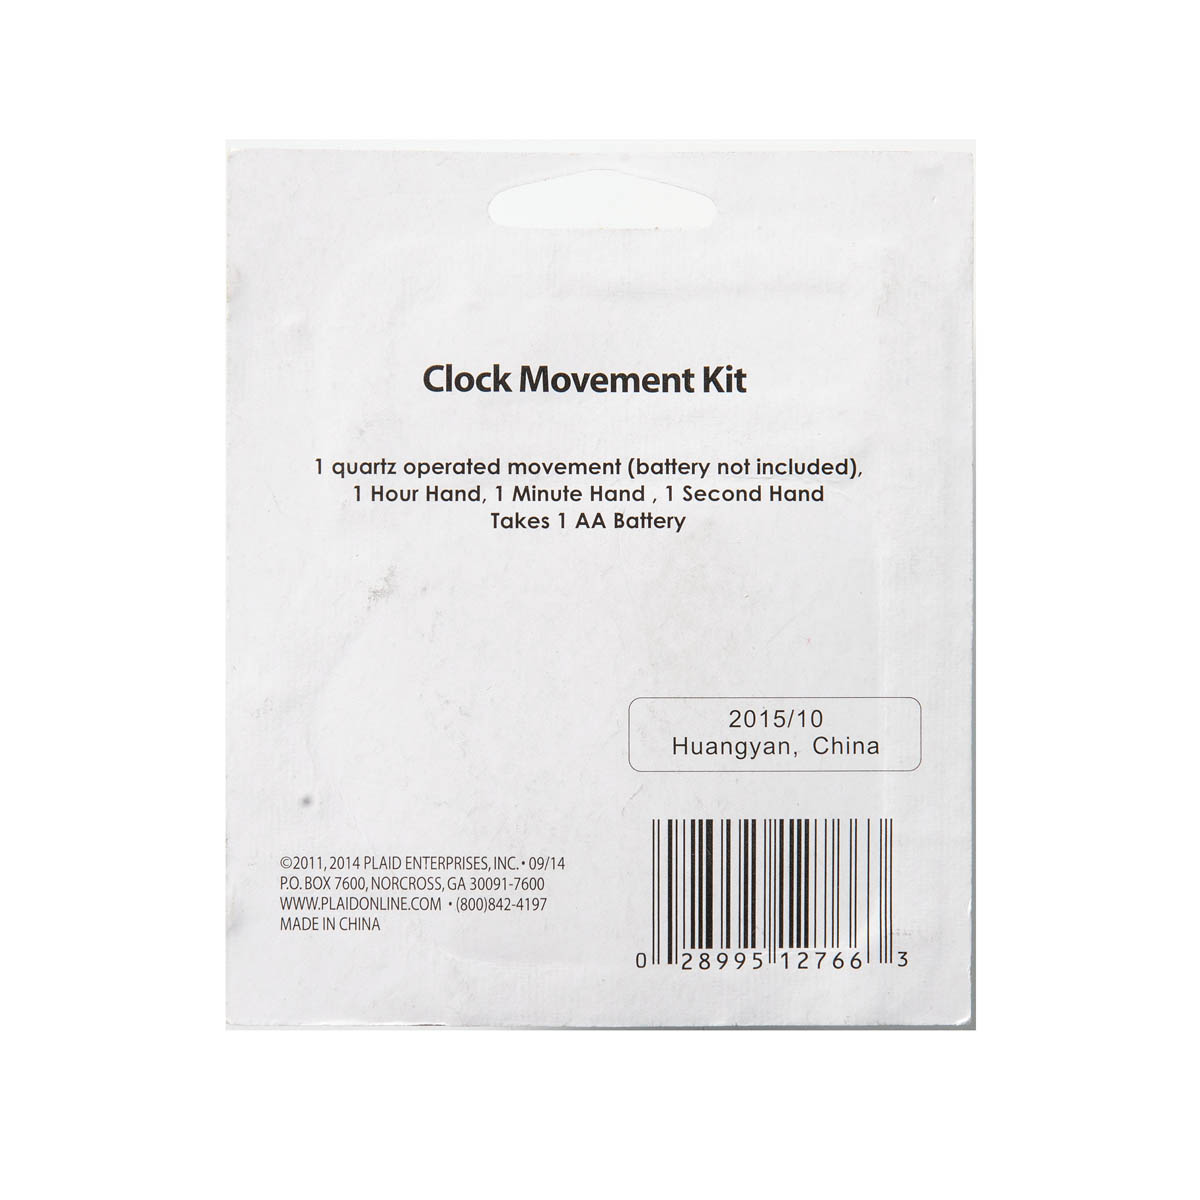 Plaid ® Accessories - Clock Movement Kit, 4 pieces - 12766